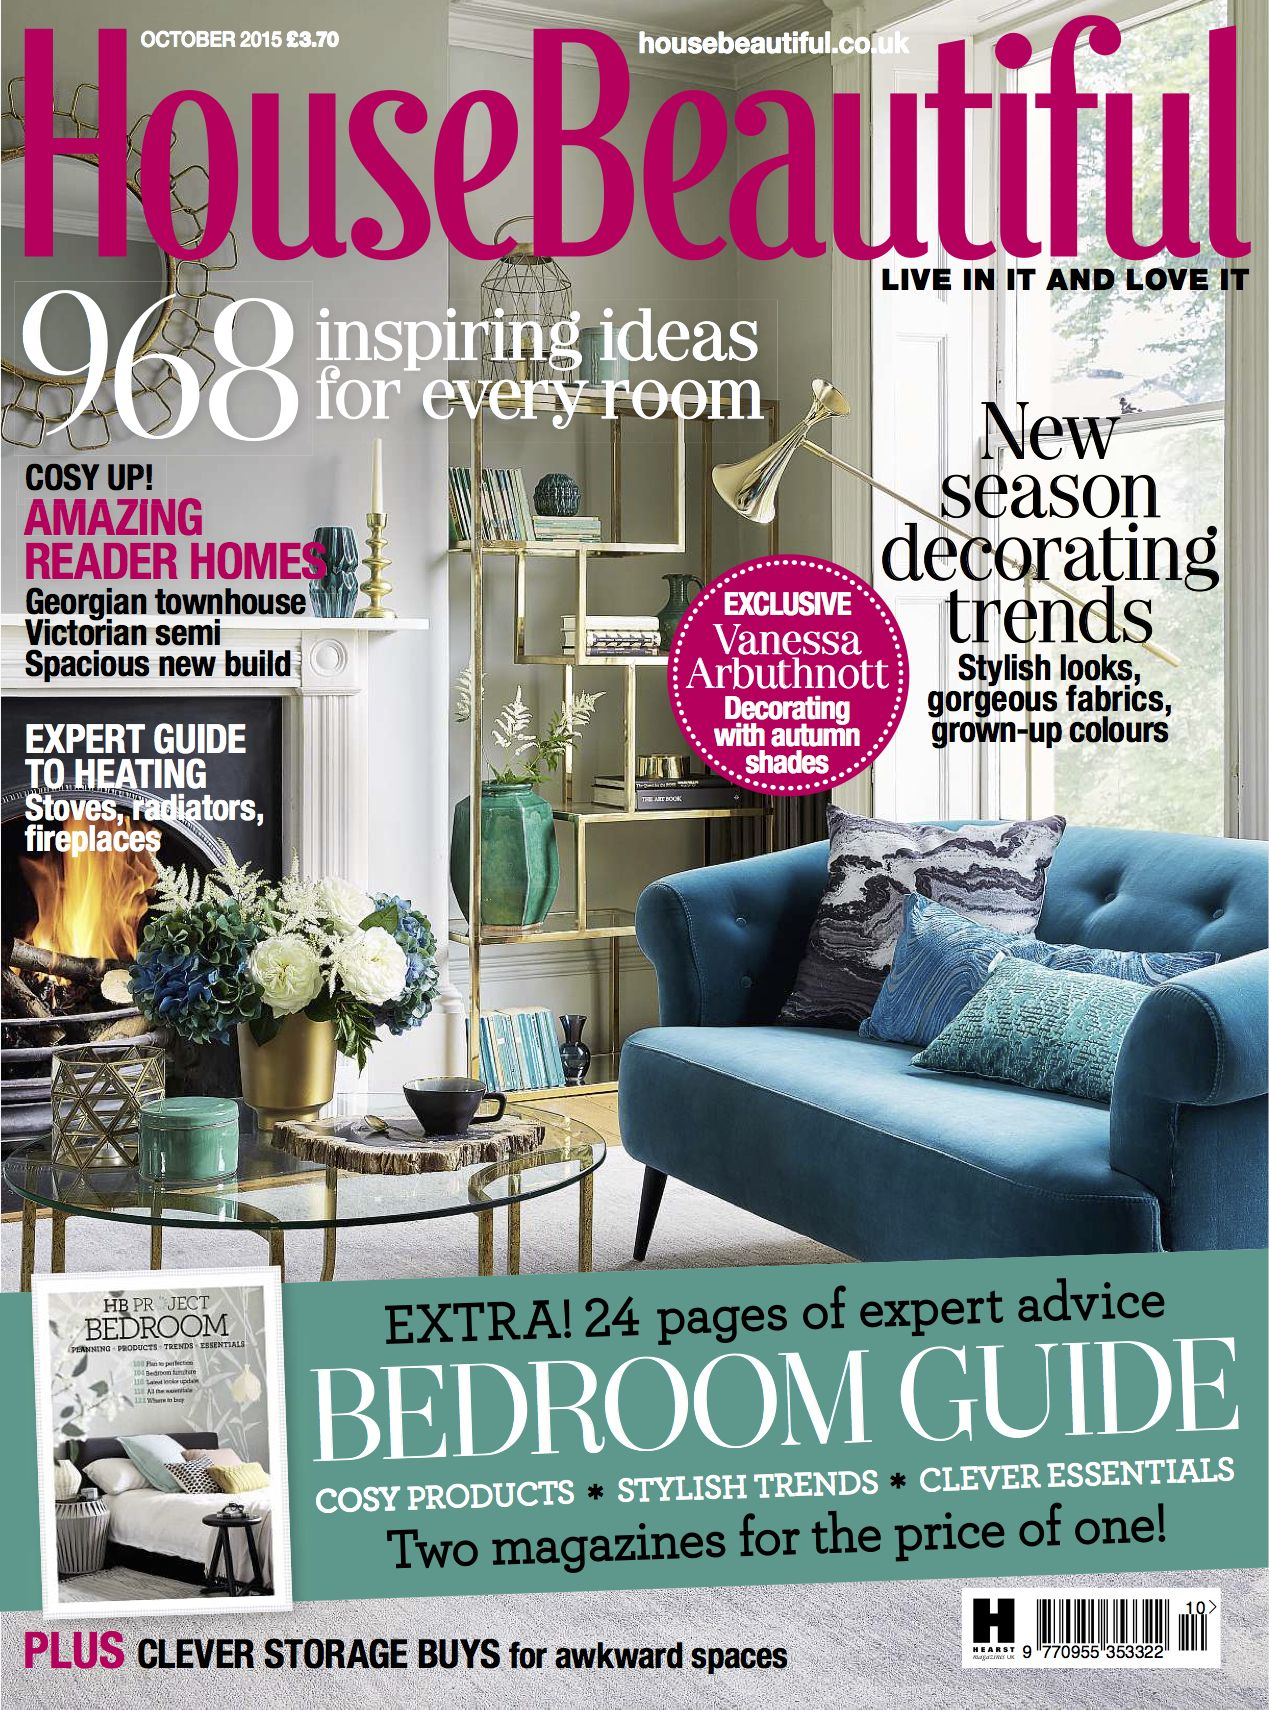 House Beautiful Magazine Why You Should Decorate With Copper This Year  House Beautiful